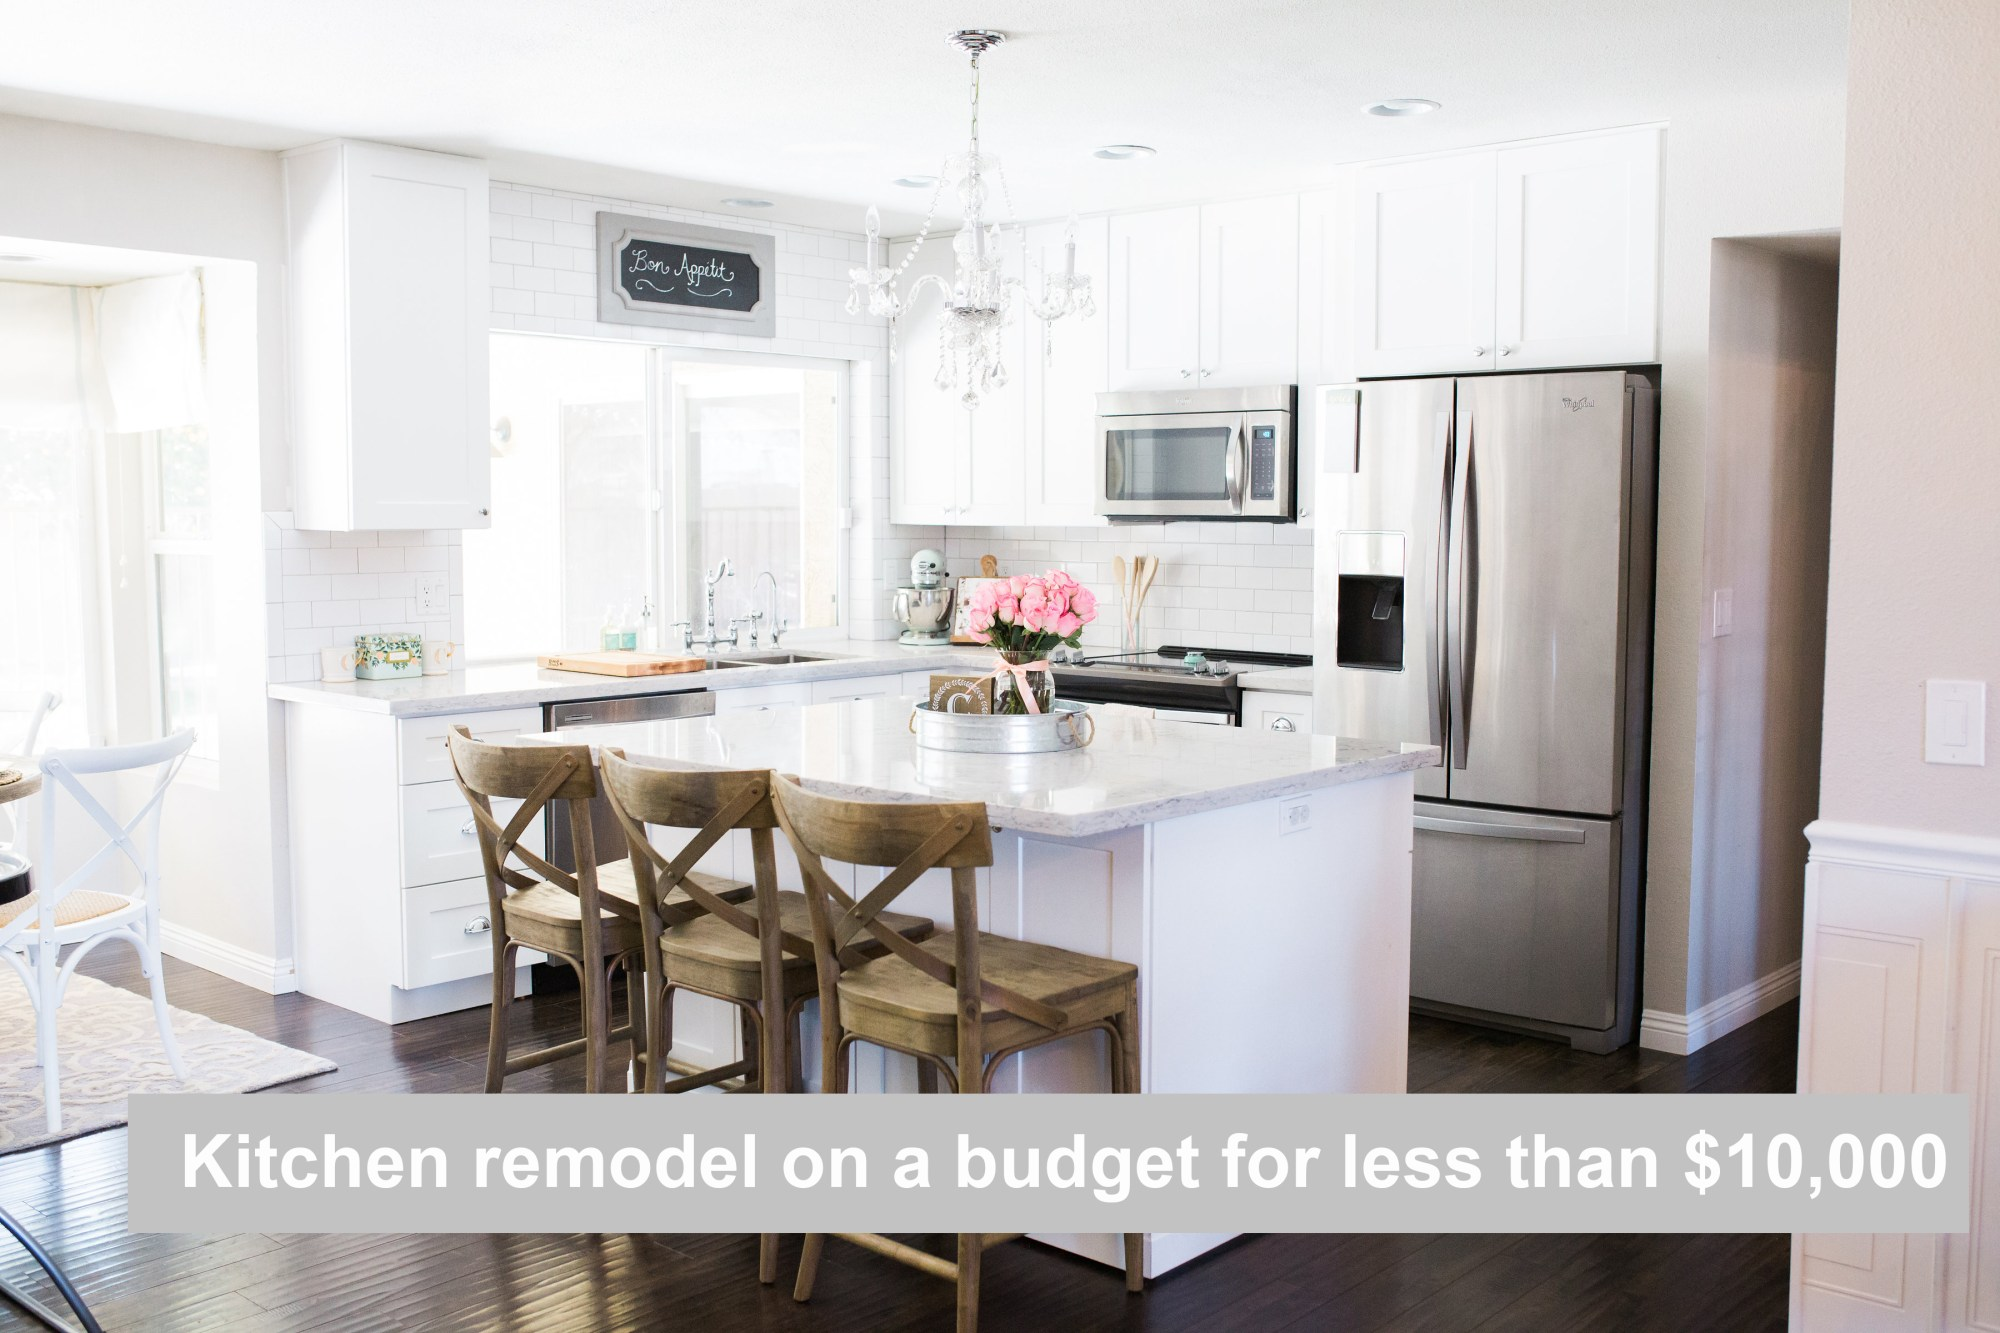 hight resolution of kitchen remodel image